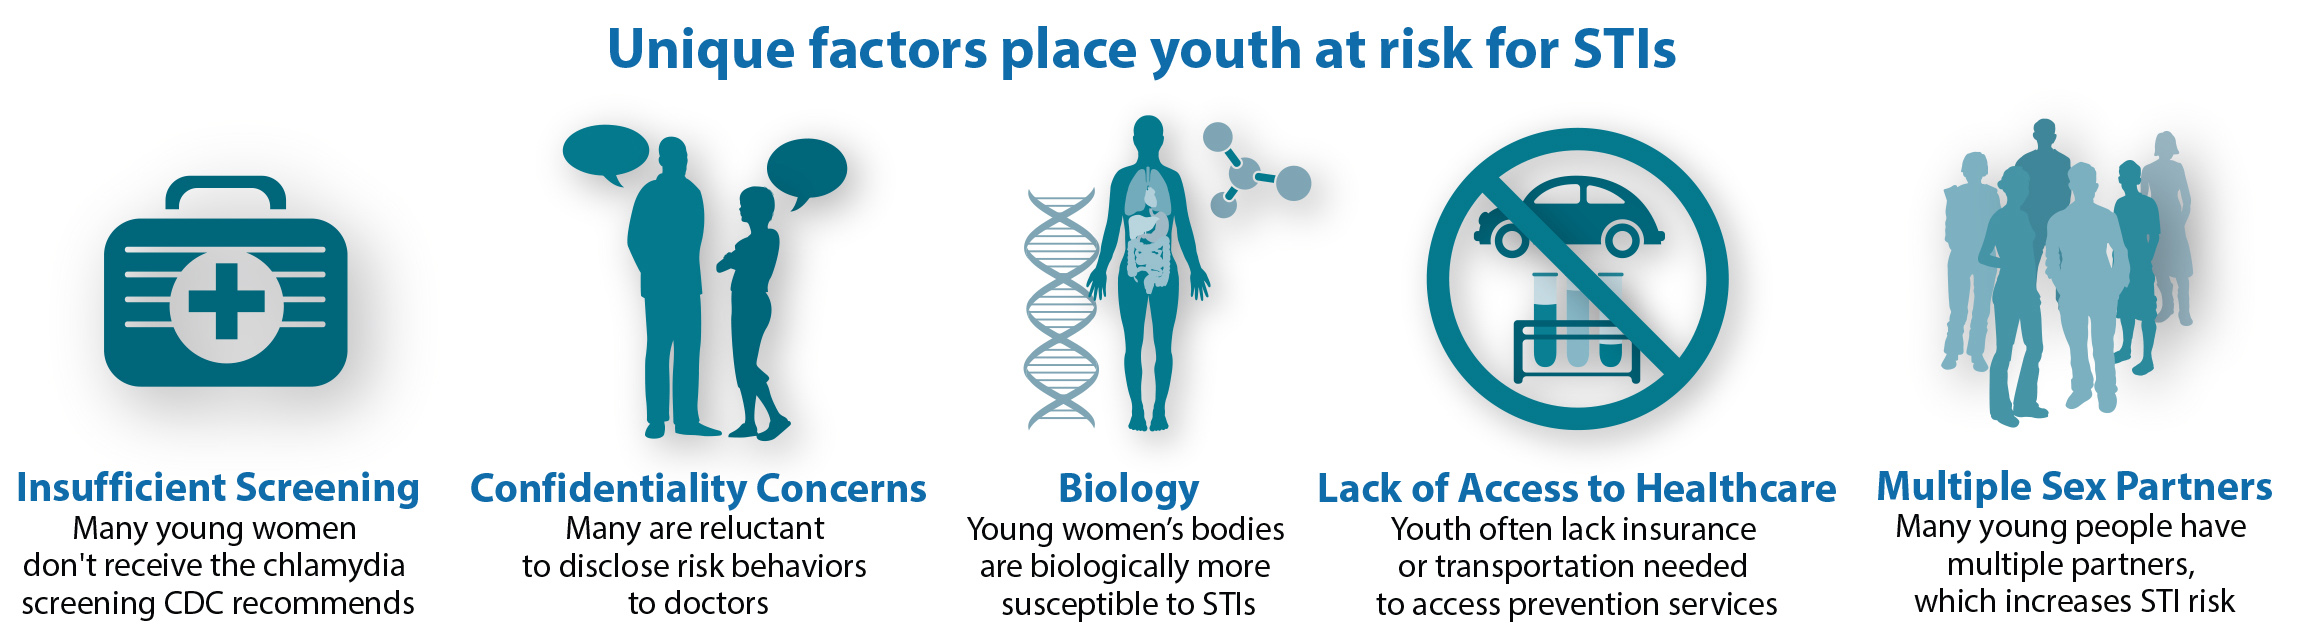 Youth Risk Factors for STIs Graphic